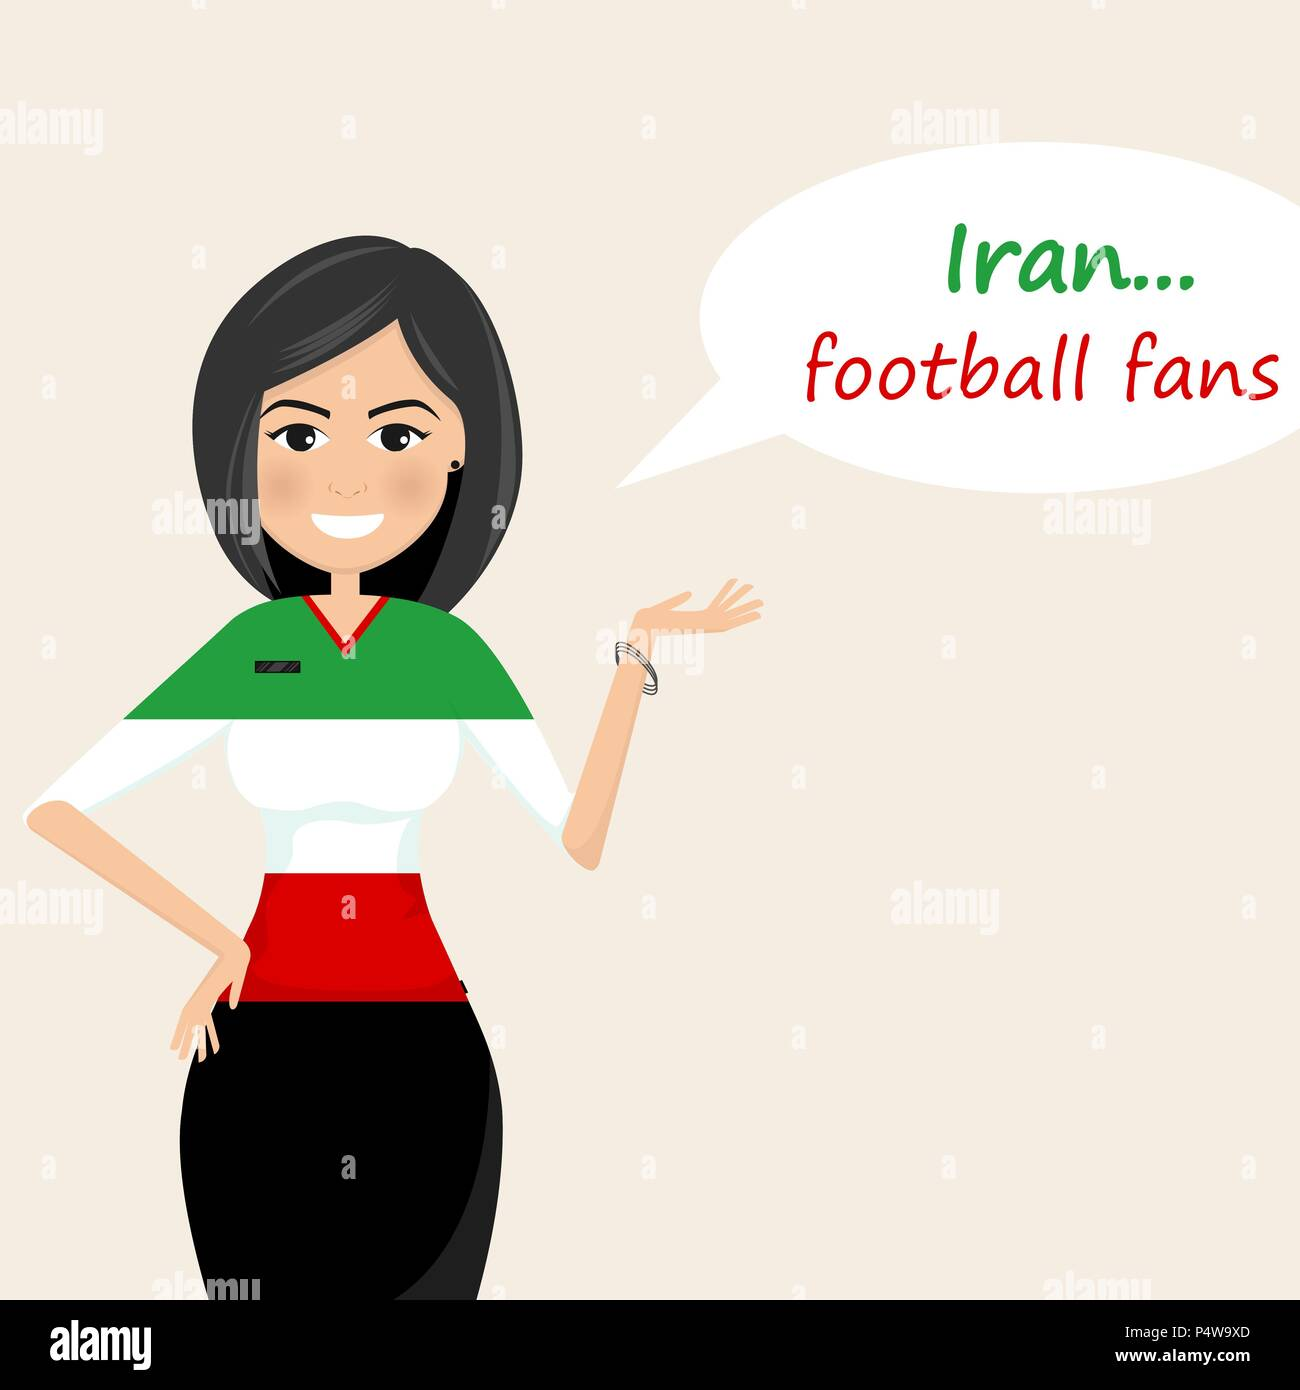 Iran football fans.Cheerful soccer fans, sports images.Young woman,Pretty girl sign.Happy fans are cheering for their team.Vector illustration - Stock Vector